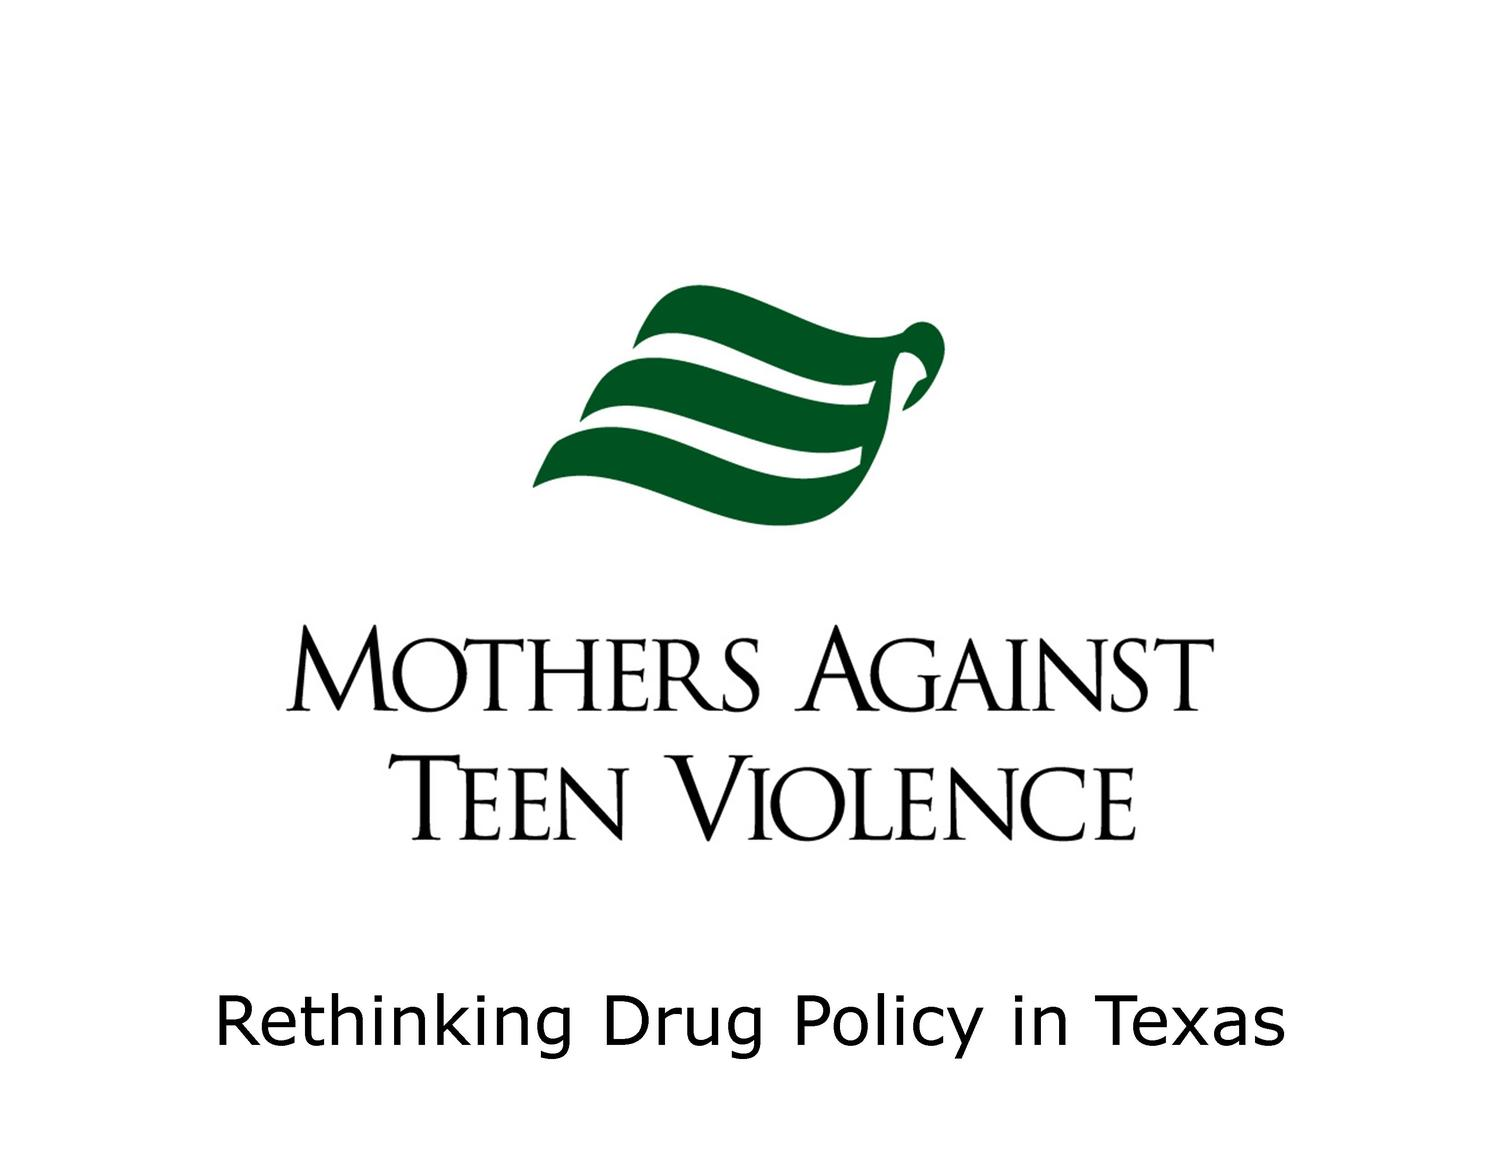 Mothers Against Teen Violence